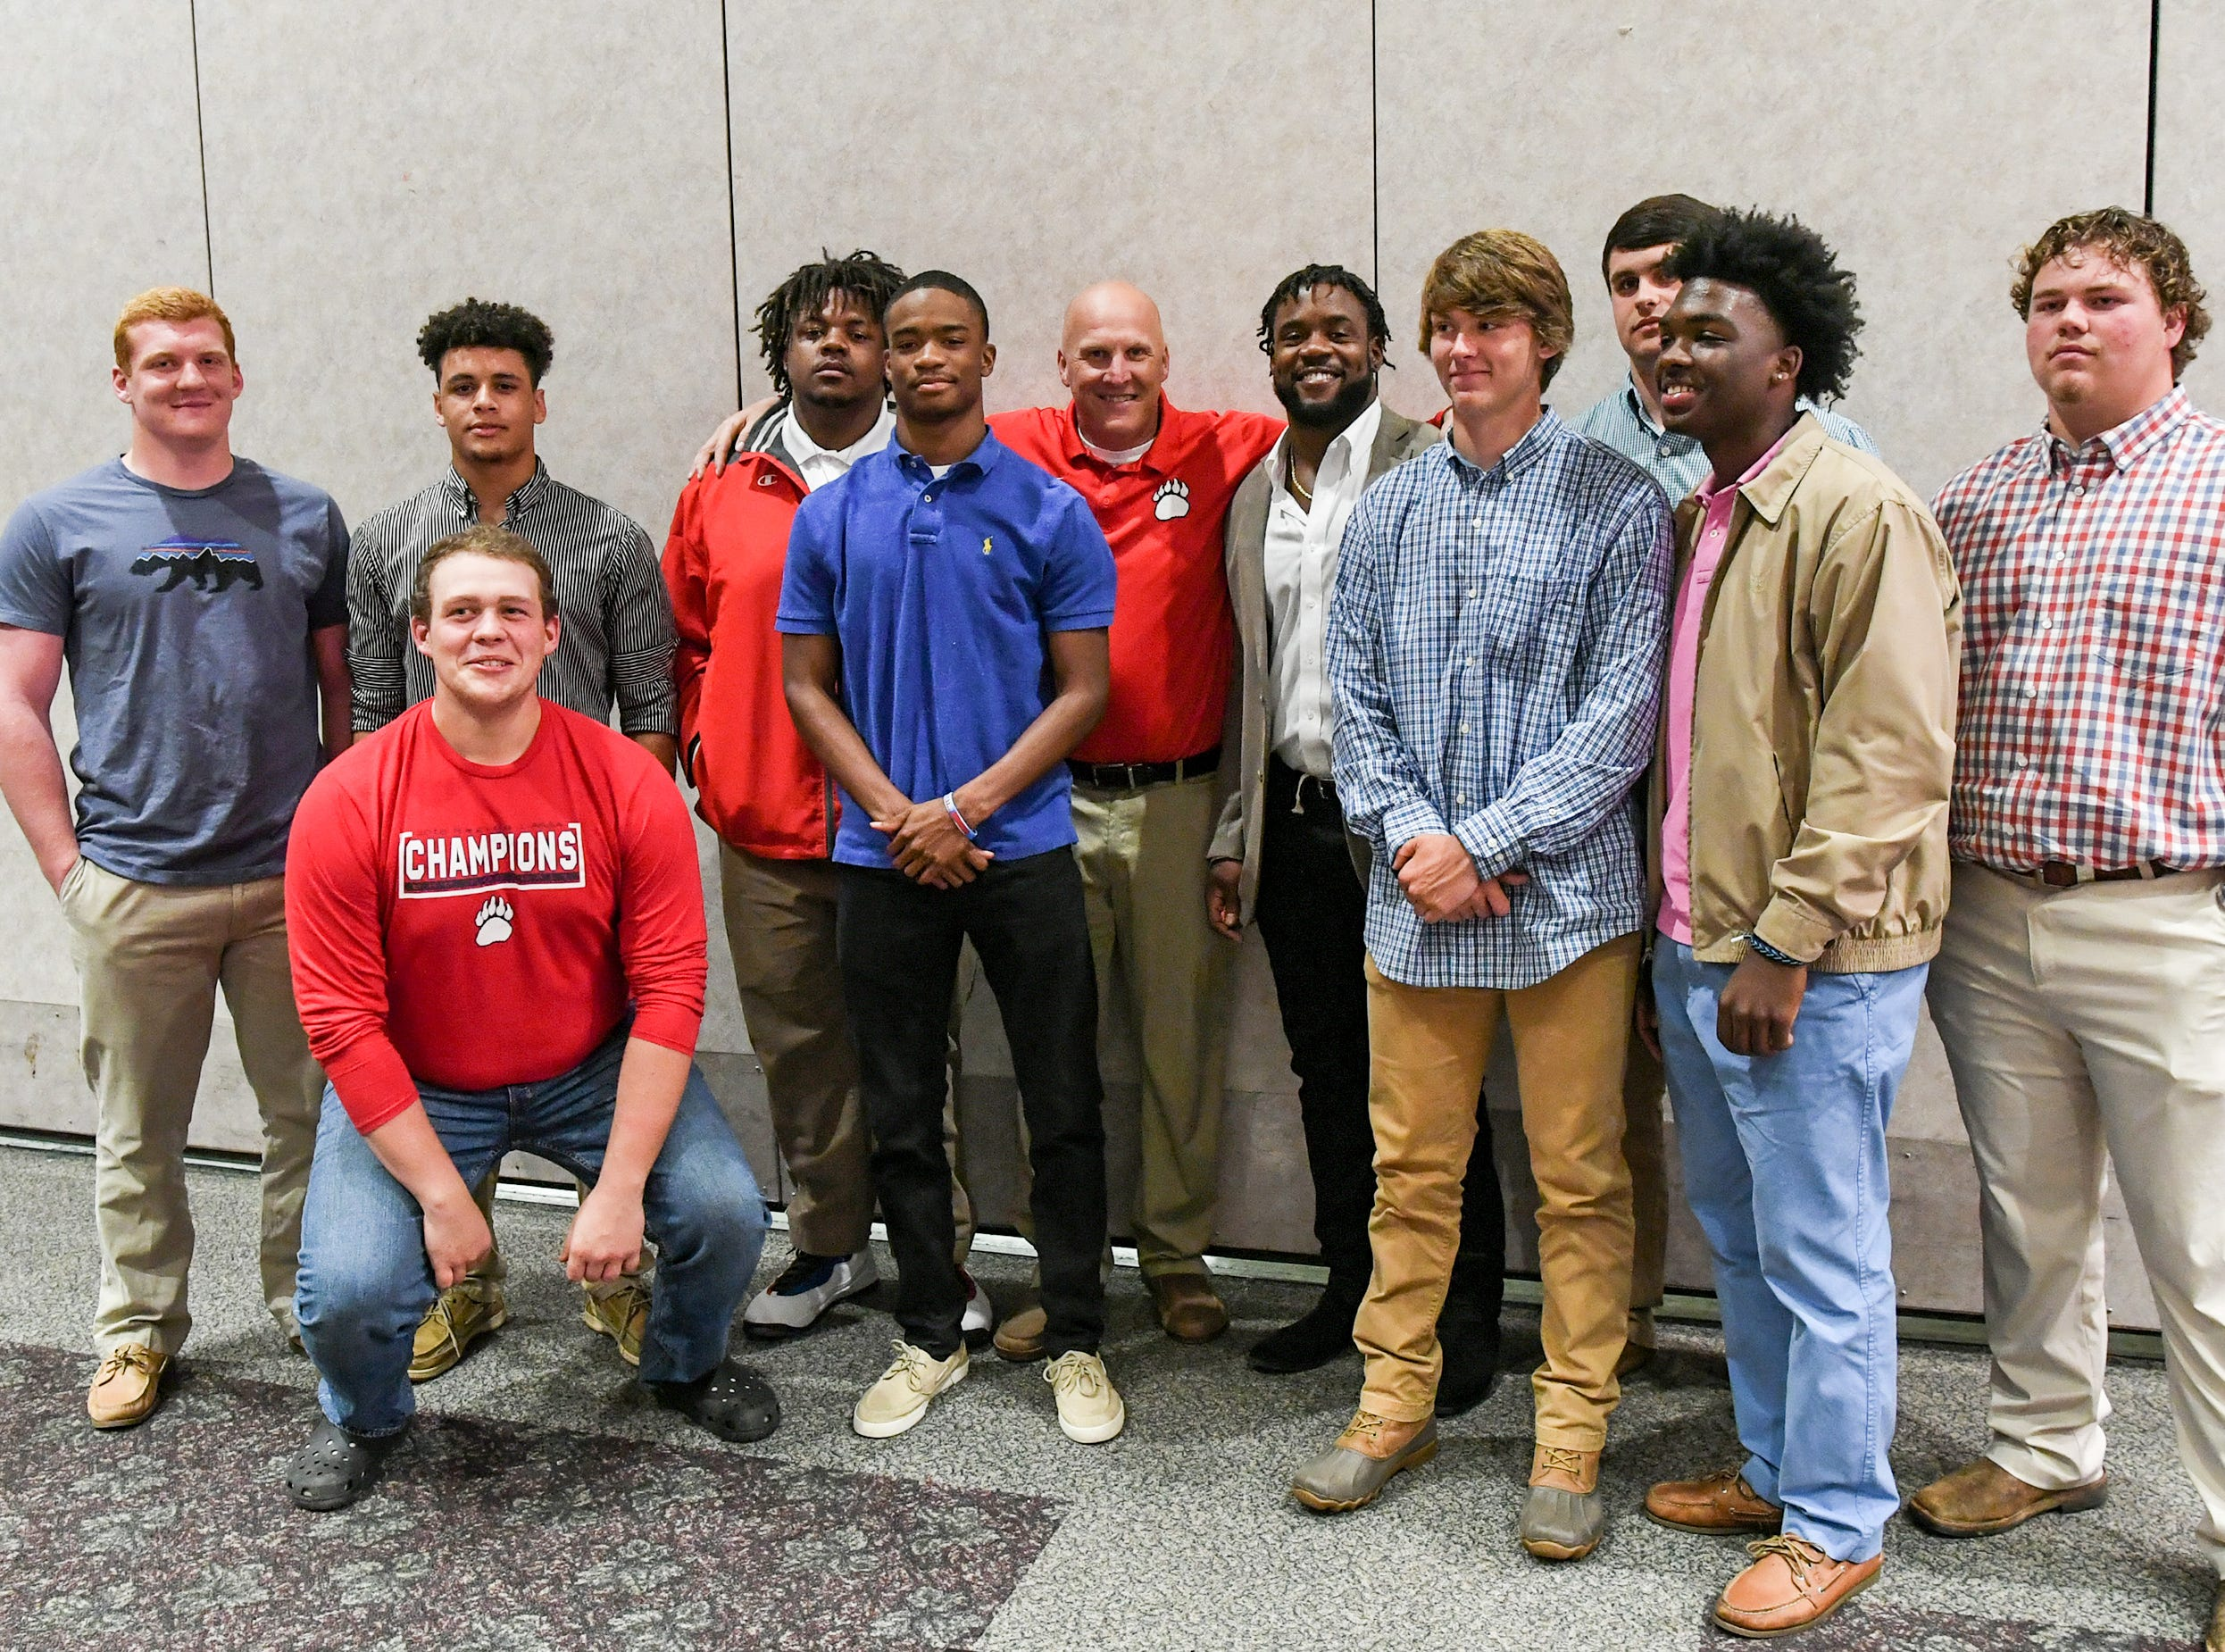 Belton-Honea Path High School coach Russell Blackston poses with players and with former Bear linebacker Kendall Joseph, middle, during the Anderson Area Touchdown Club Annual Awards Banquet at the Anderson County Civic Center Monday, April 8th, 2019. The club and Anderson County Councilman Craig Wooten honored Joseph, who was part of two National Championship Clemson football teams.